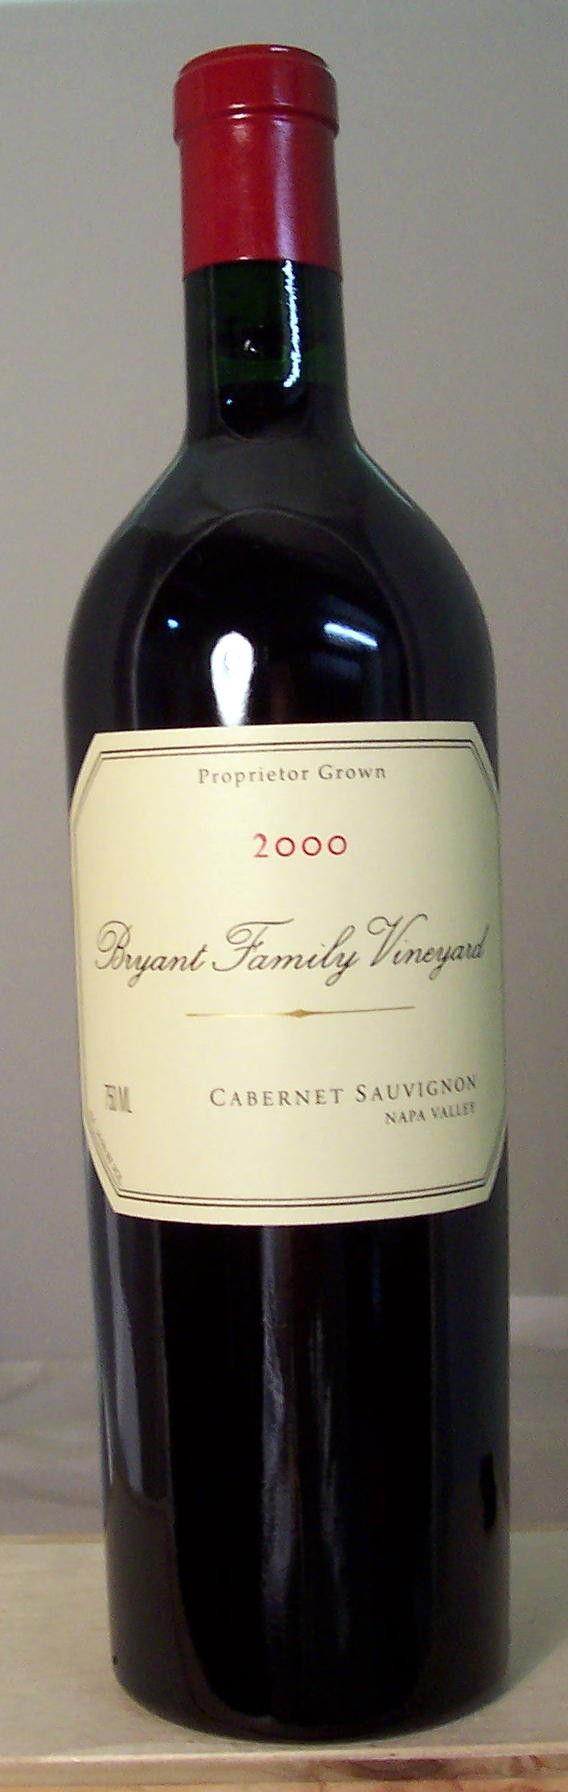 Bryant Family Vineyard Cabernet Sauvignon Napa Valley 2000